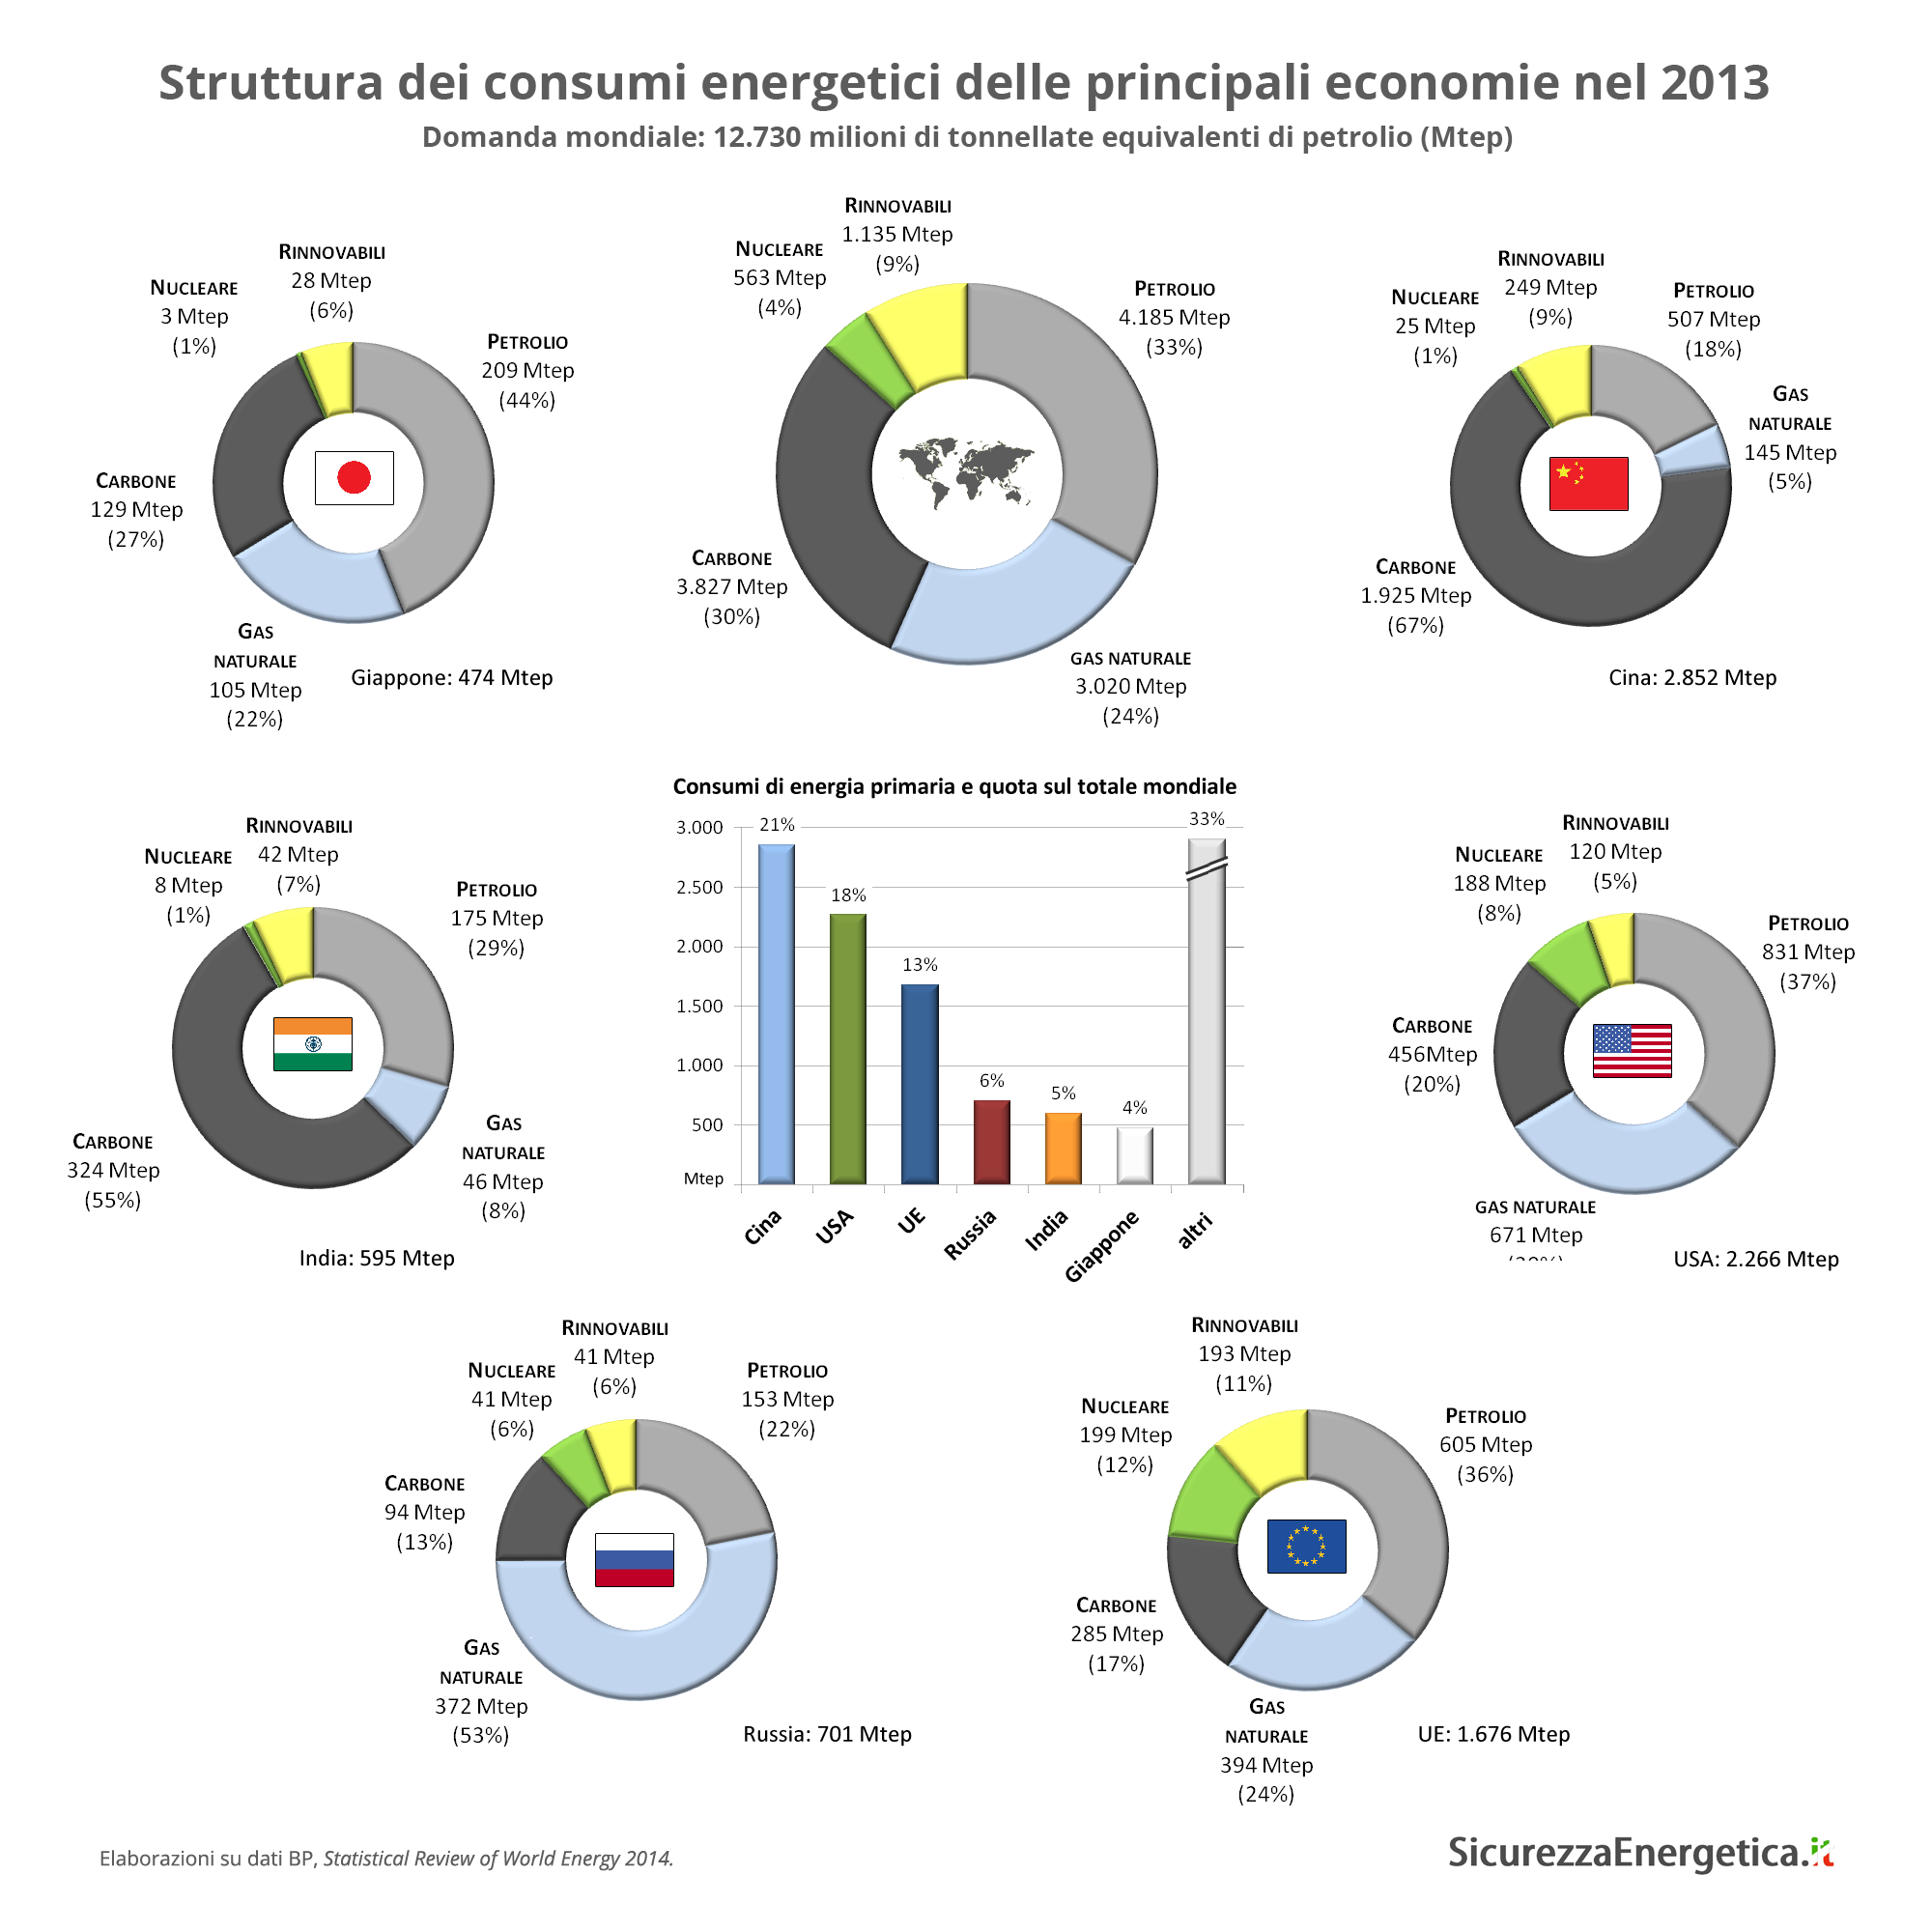 Struttura dei consumi energetici delle principali economie nel 2012